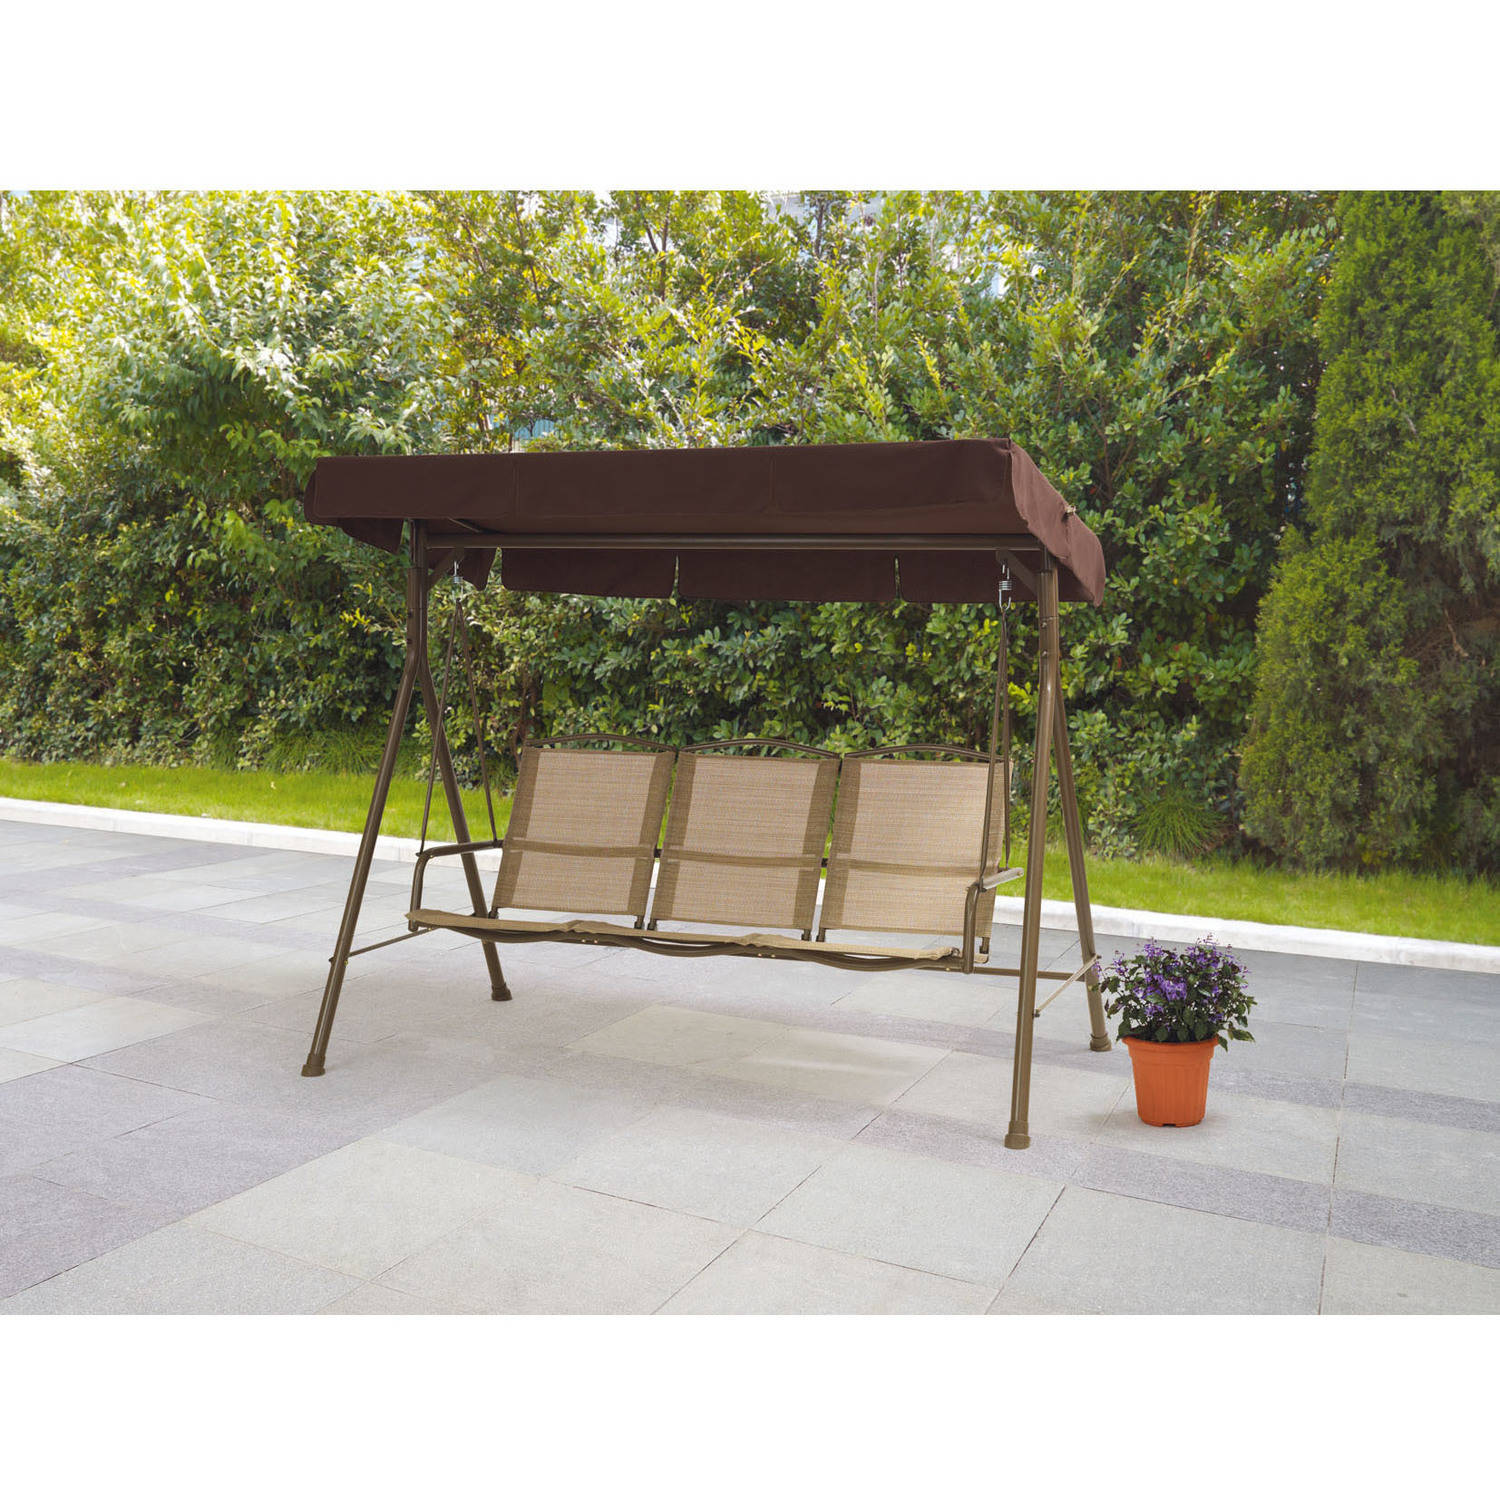 Mainstays Sand Dune 3 Person Outdoor Sling Canopy Porch Swing With Canopy,  Dune   Walmart.com